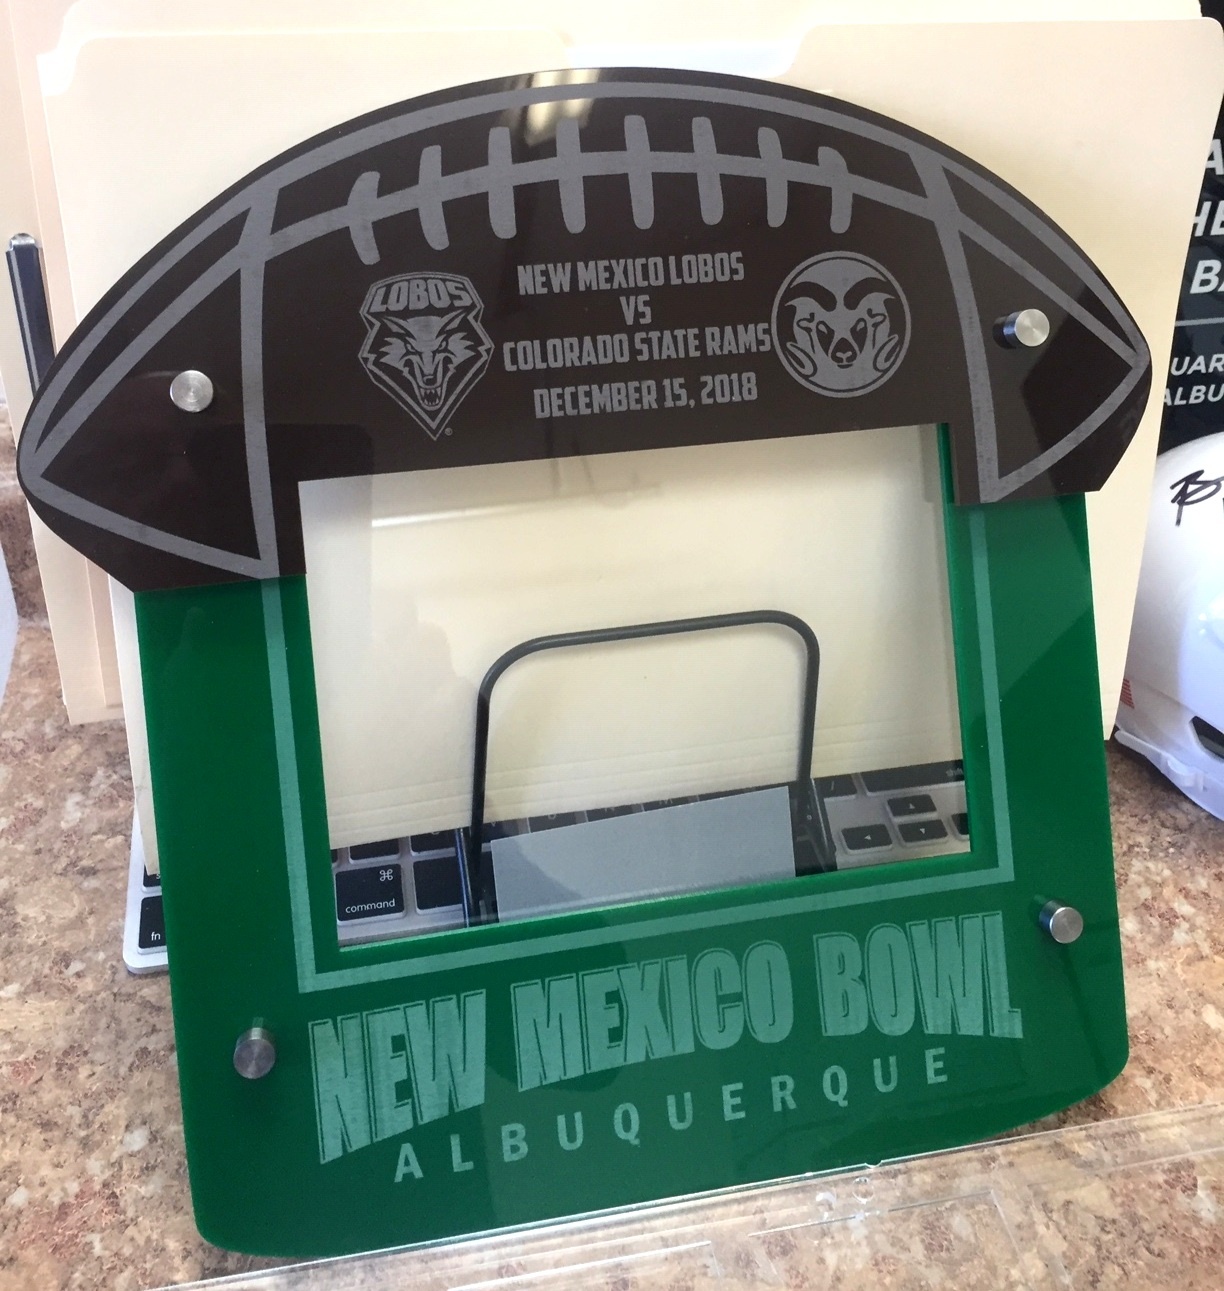 5x7 Landscape Football frame - 4-layer acrylic, event/team colors, upper half custom fabricated and etched to resemble football  Contact us for pricing information.